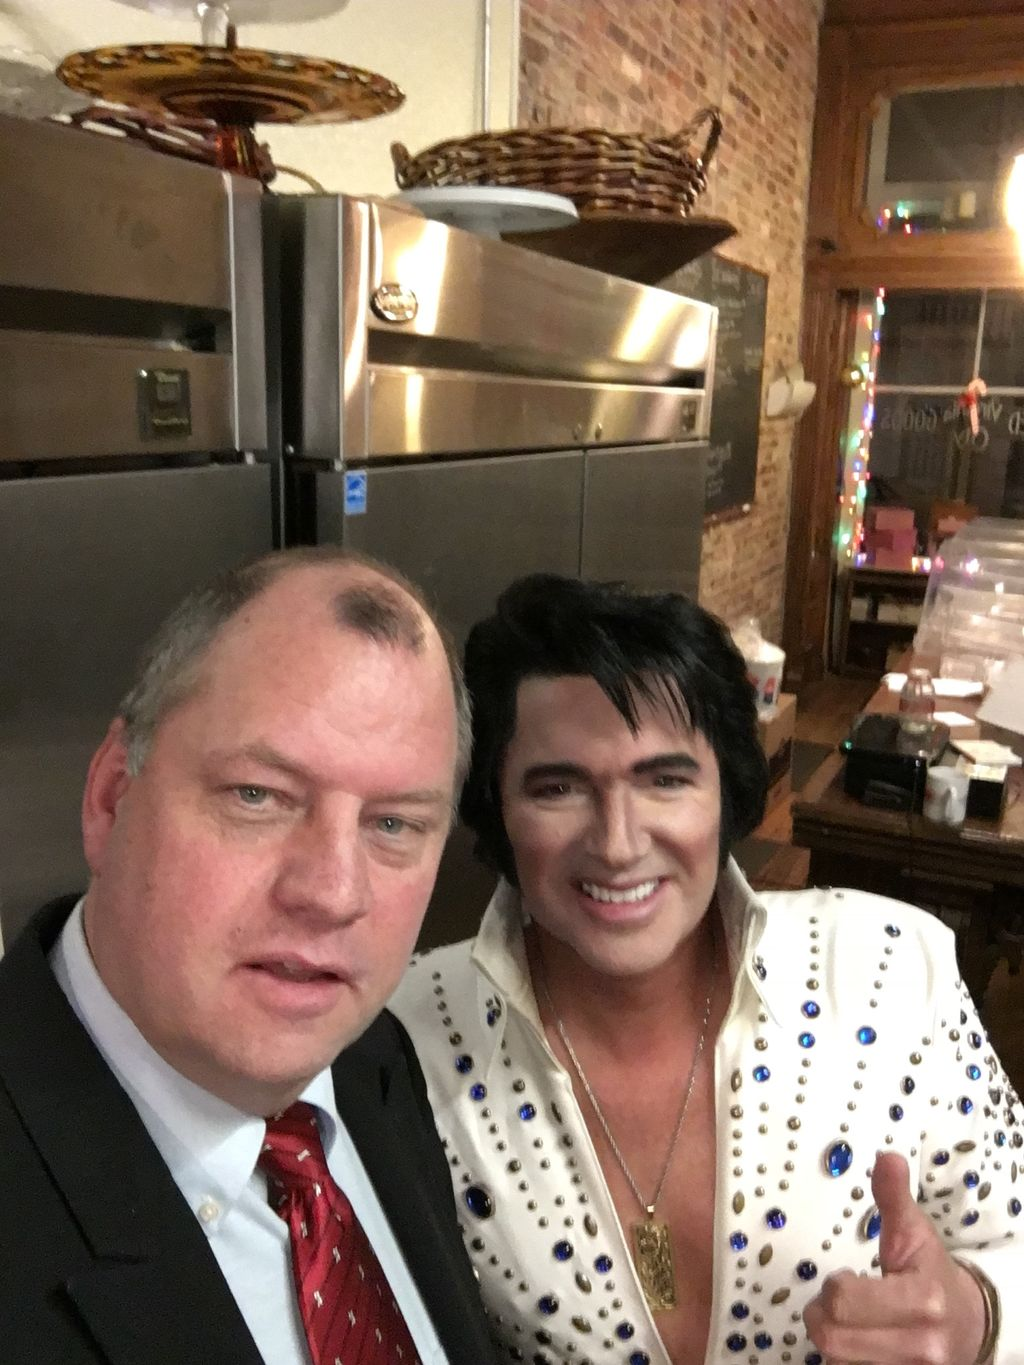 Opened for an Elvis impersonator